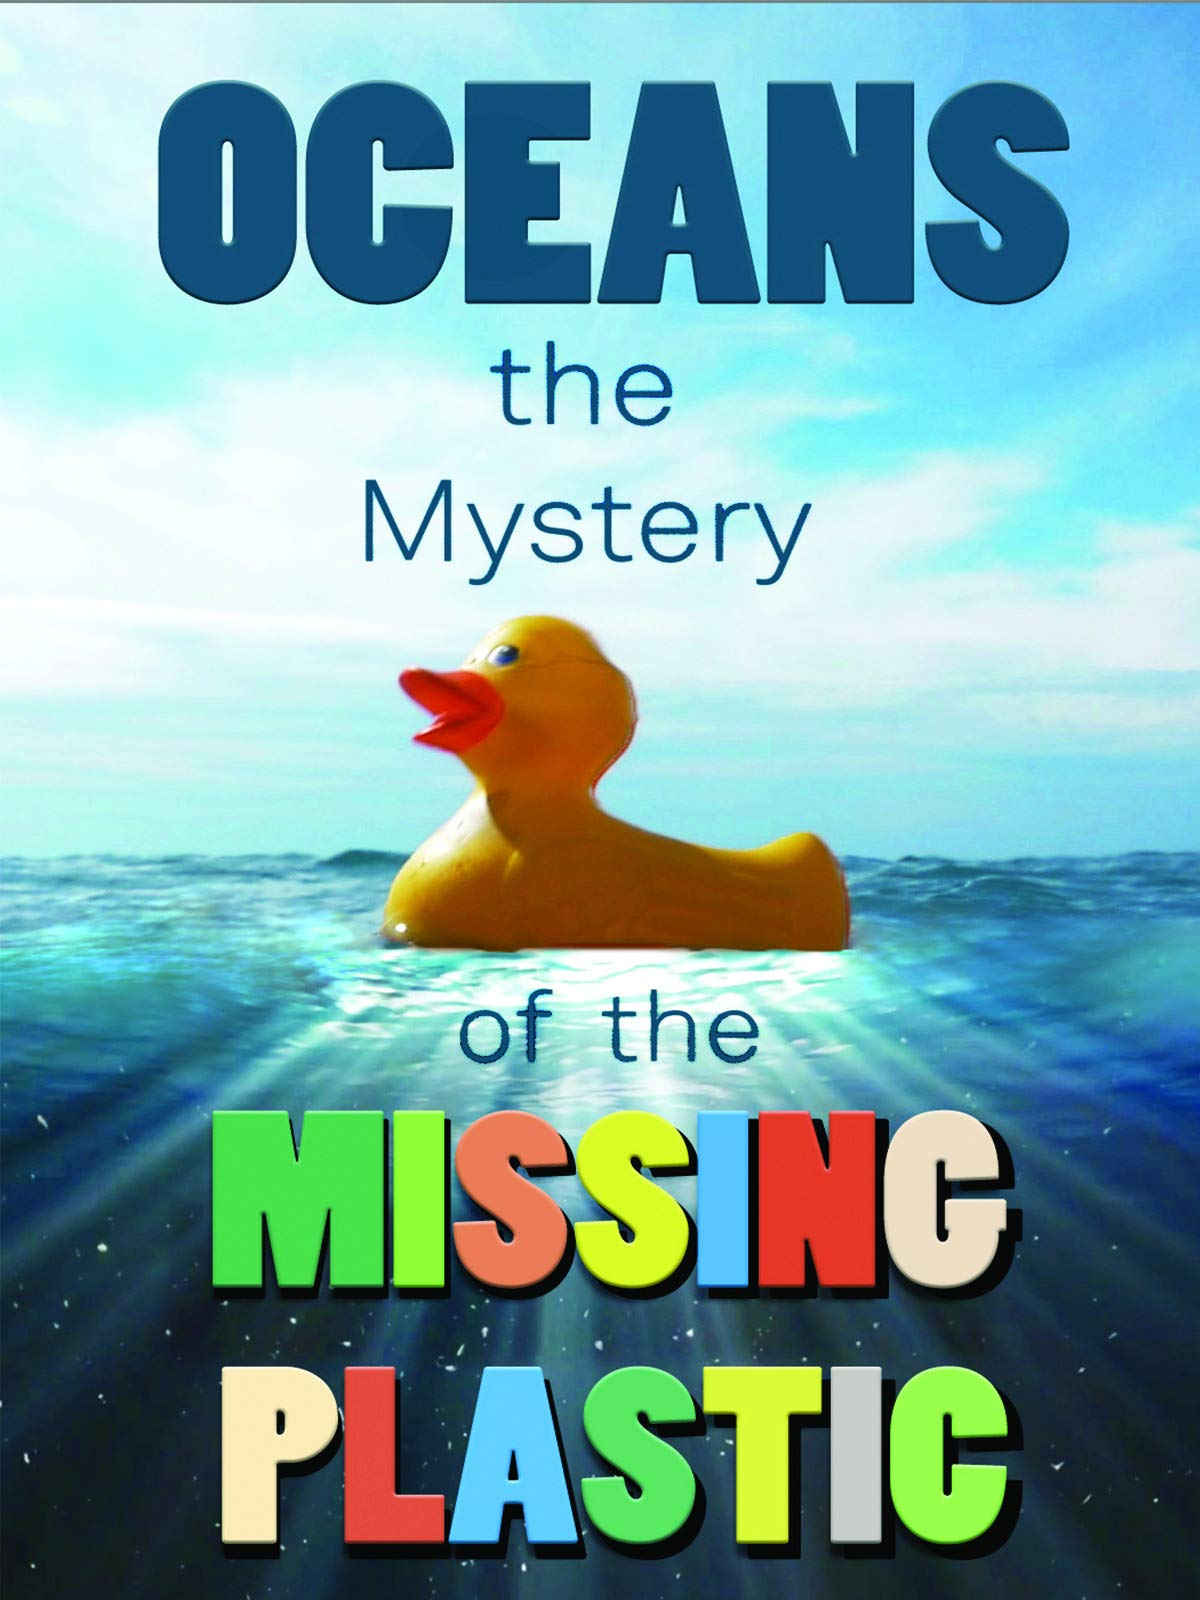 Oceans: The Mystery of the Missing Plastic on Amazon Prime Video UK